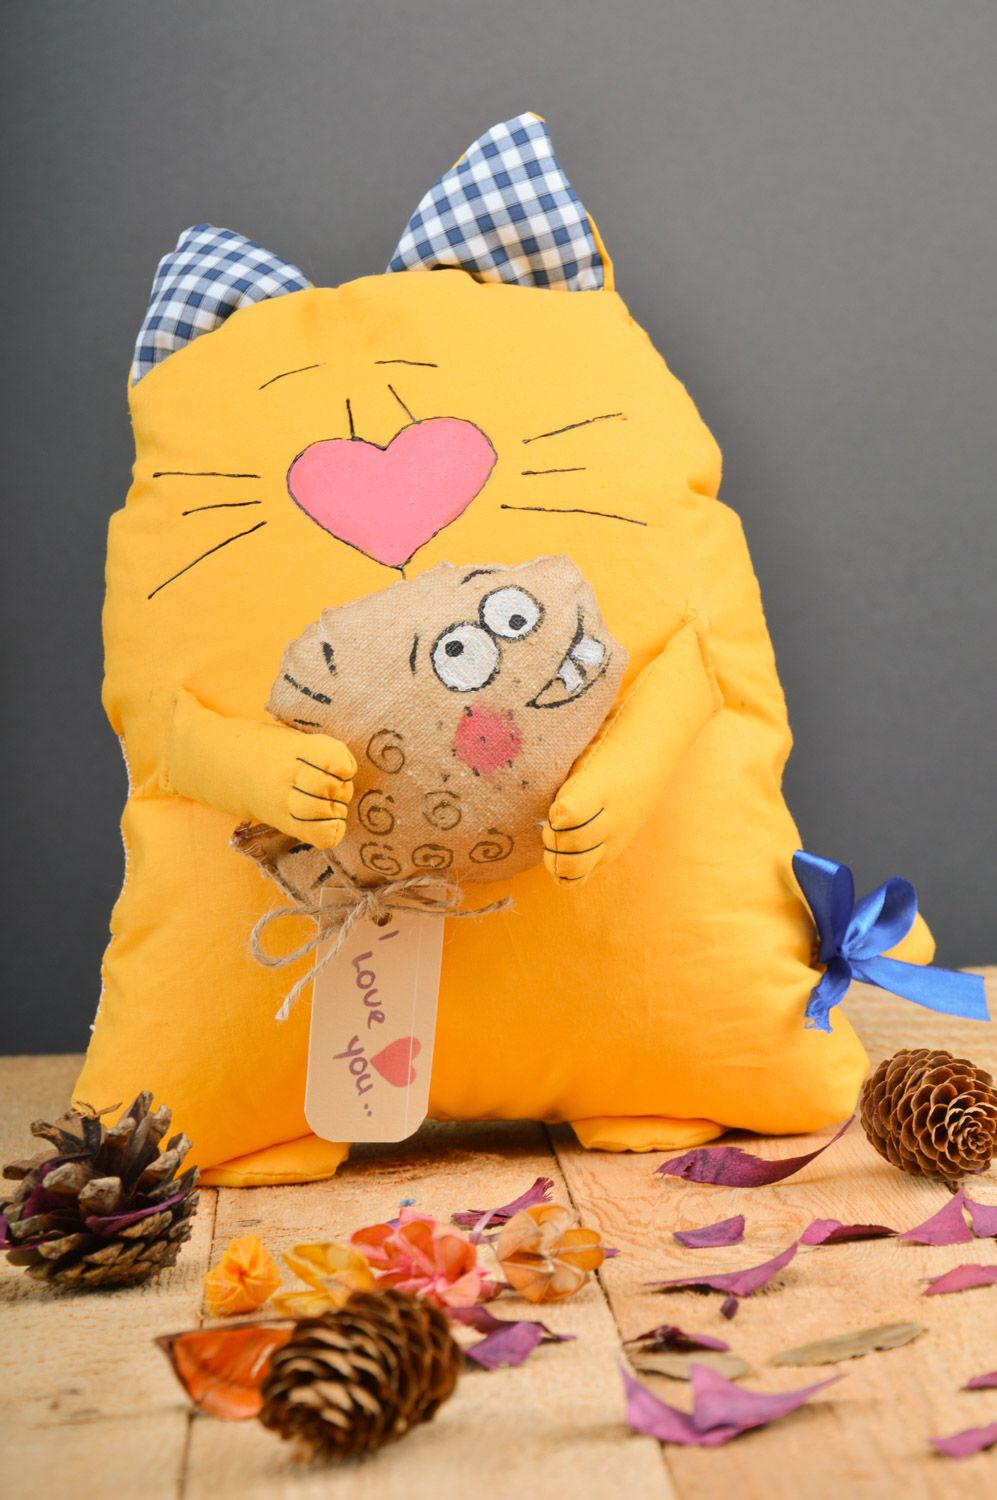 Large handmade aroma sachet pillow yellow toy cat with herbs inside photo 5